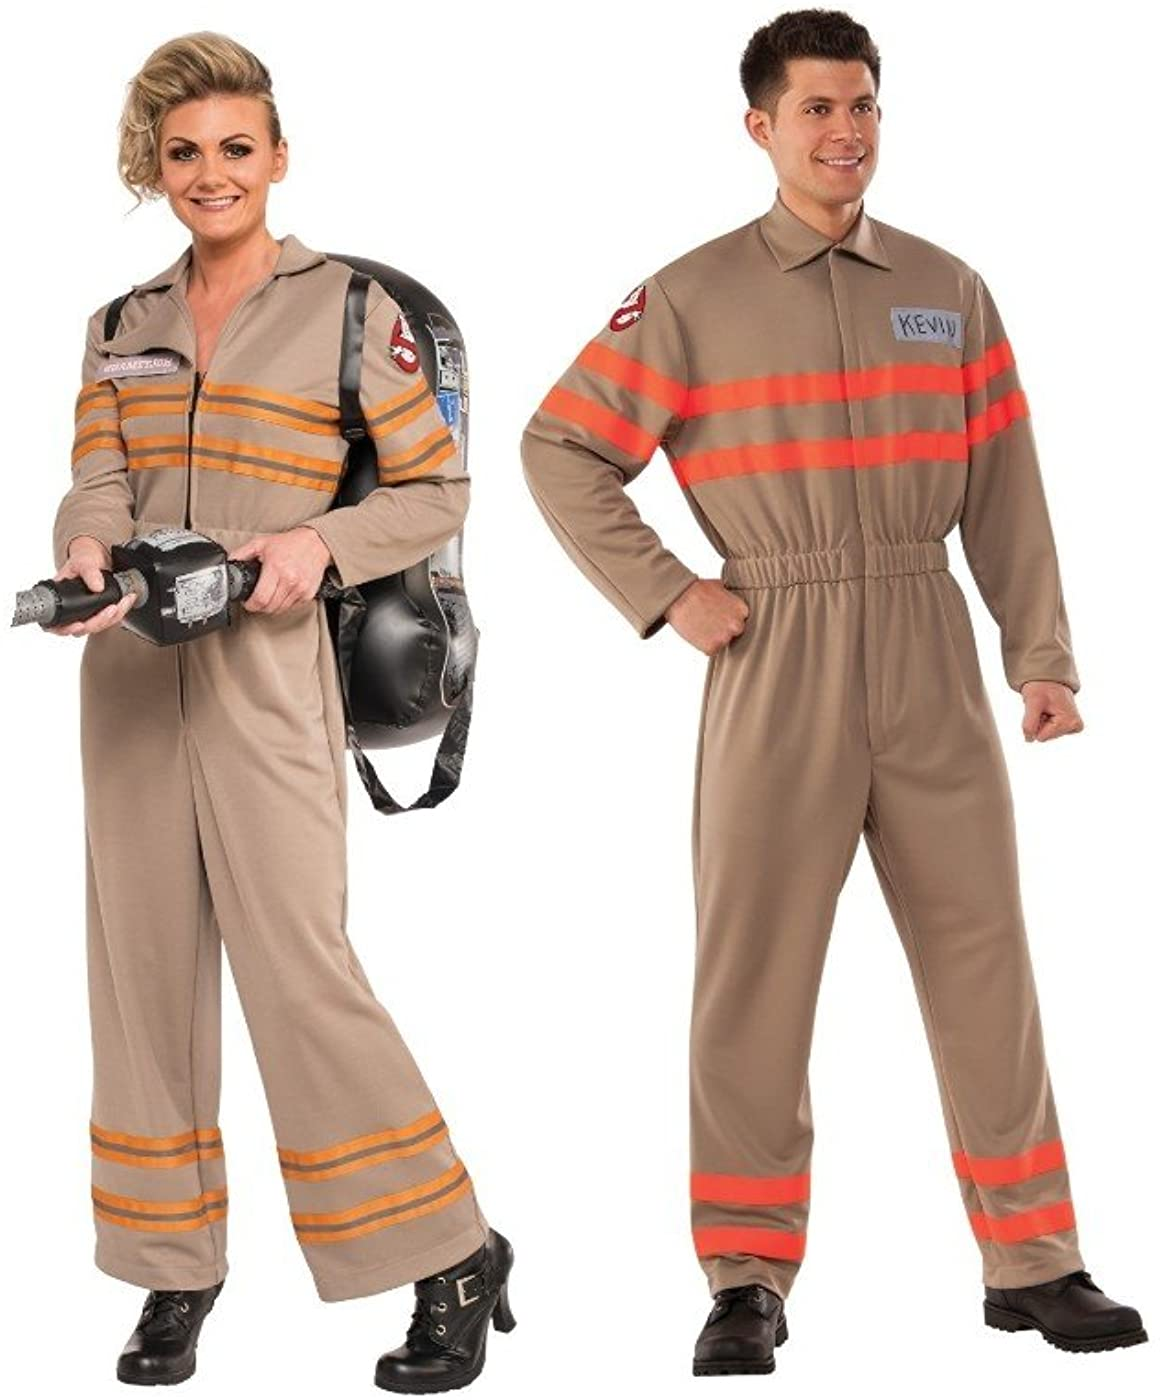 Wonder Clothing Ghostbusters Couples Costume